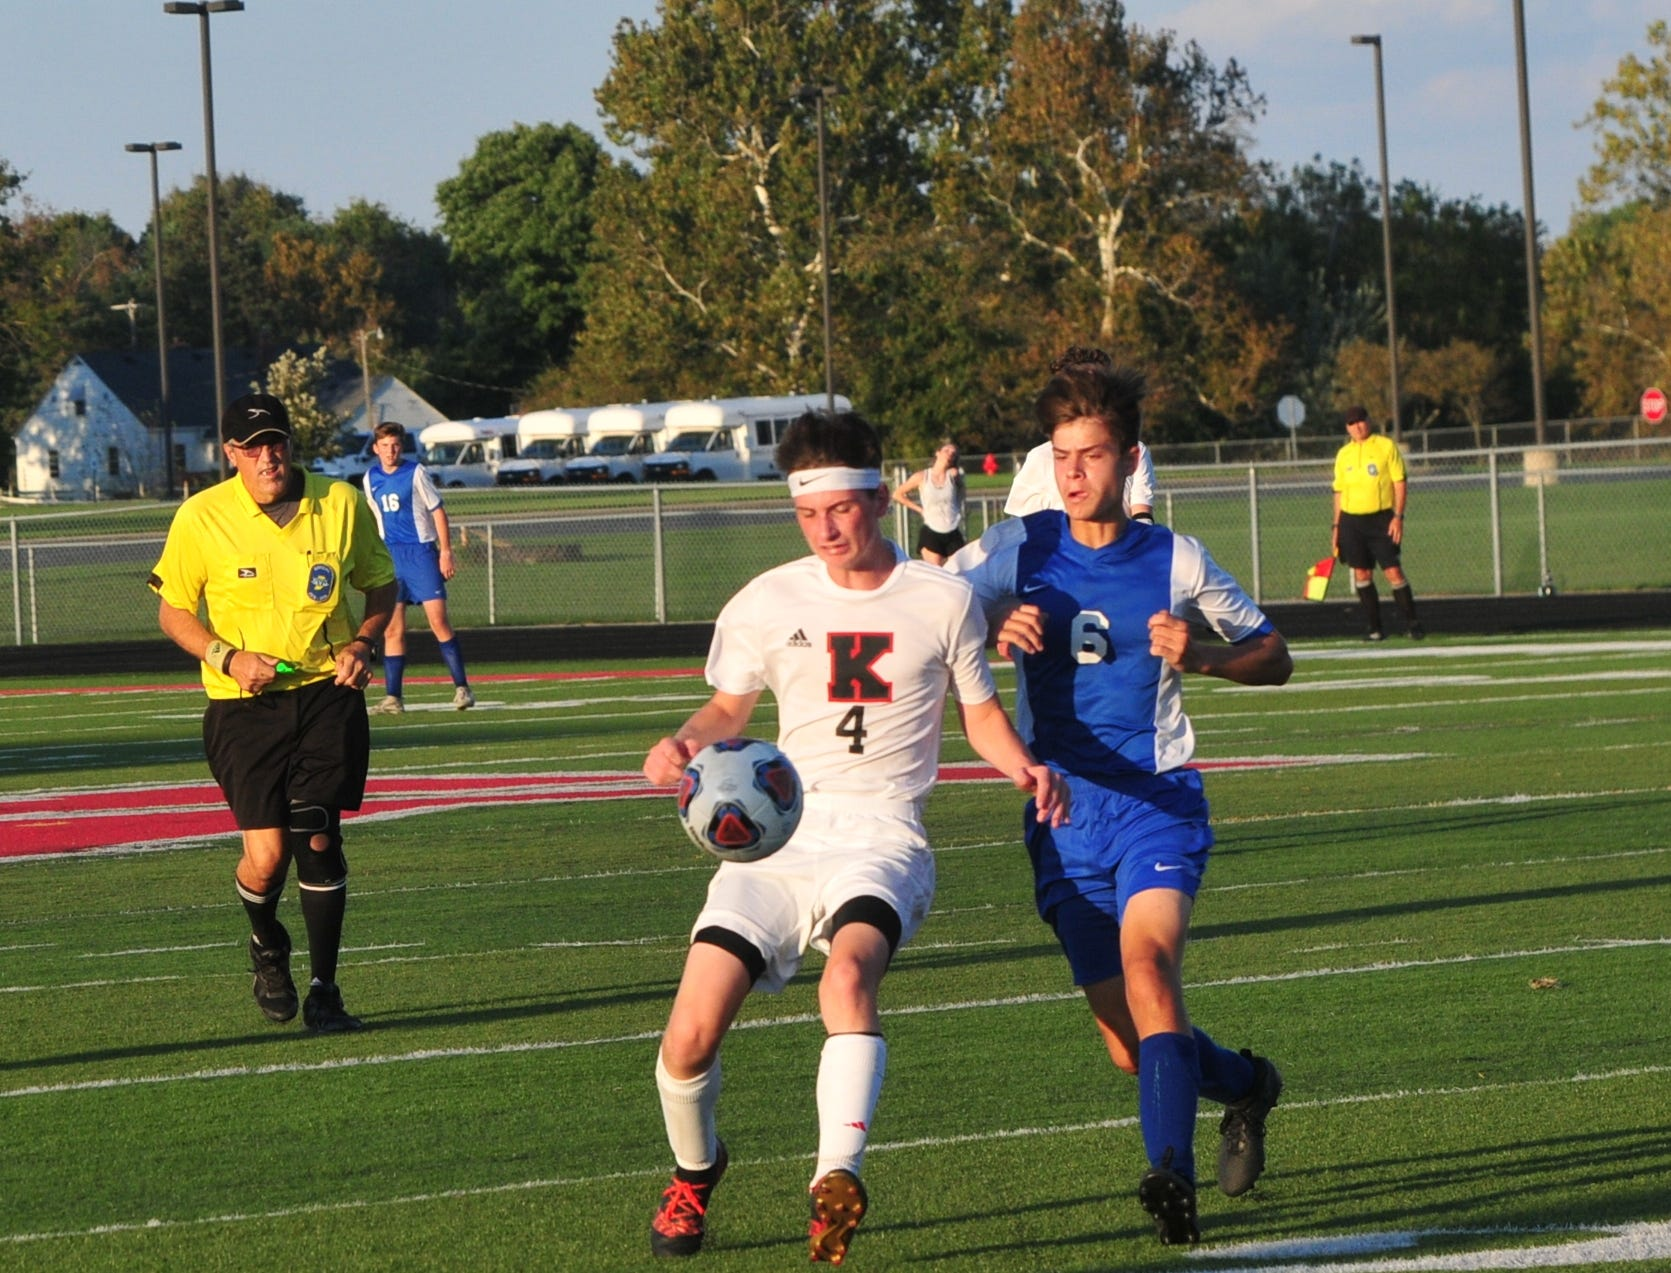 Centerville's Keegan Schlotterbeck (6) battles Knightstown's Addison Jones (4) for the ball during the IHSAA Class A Sectional 42 boys soccer semifinal at Knightstown Wednesday, Oct. 3, 2018.